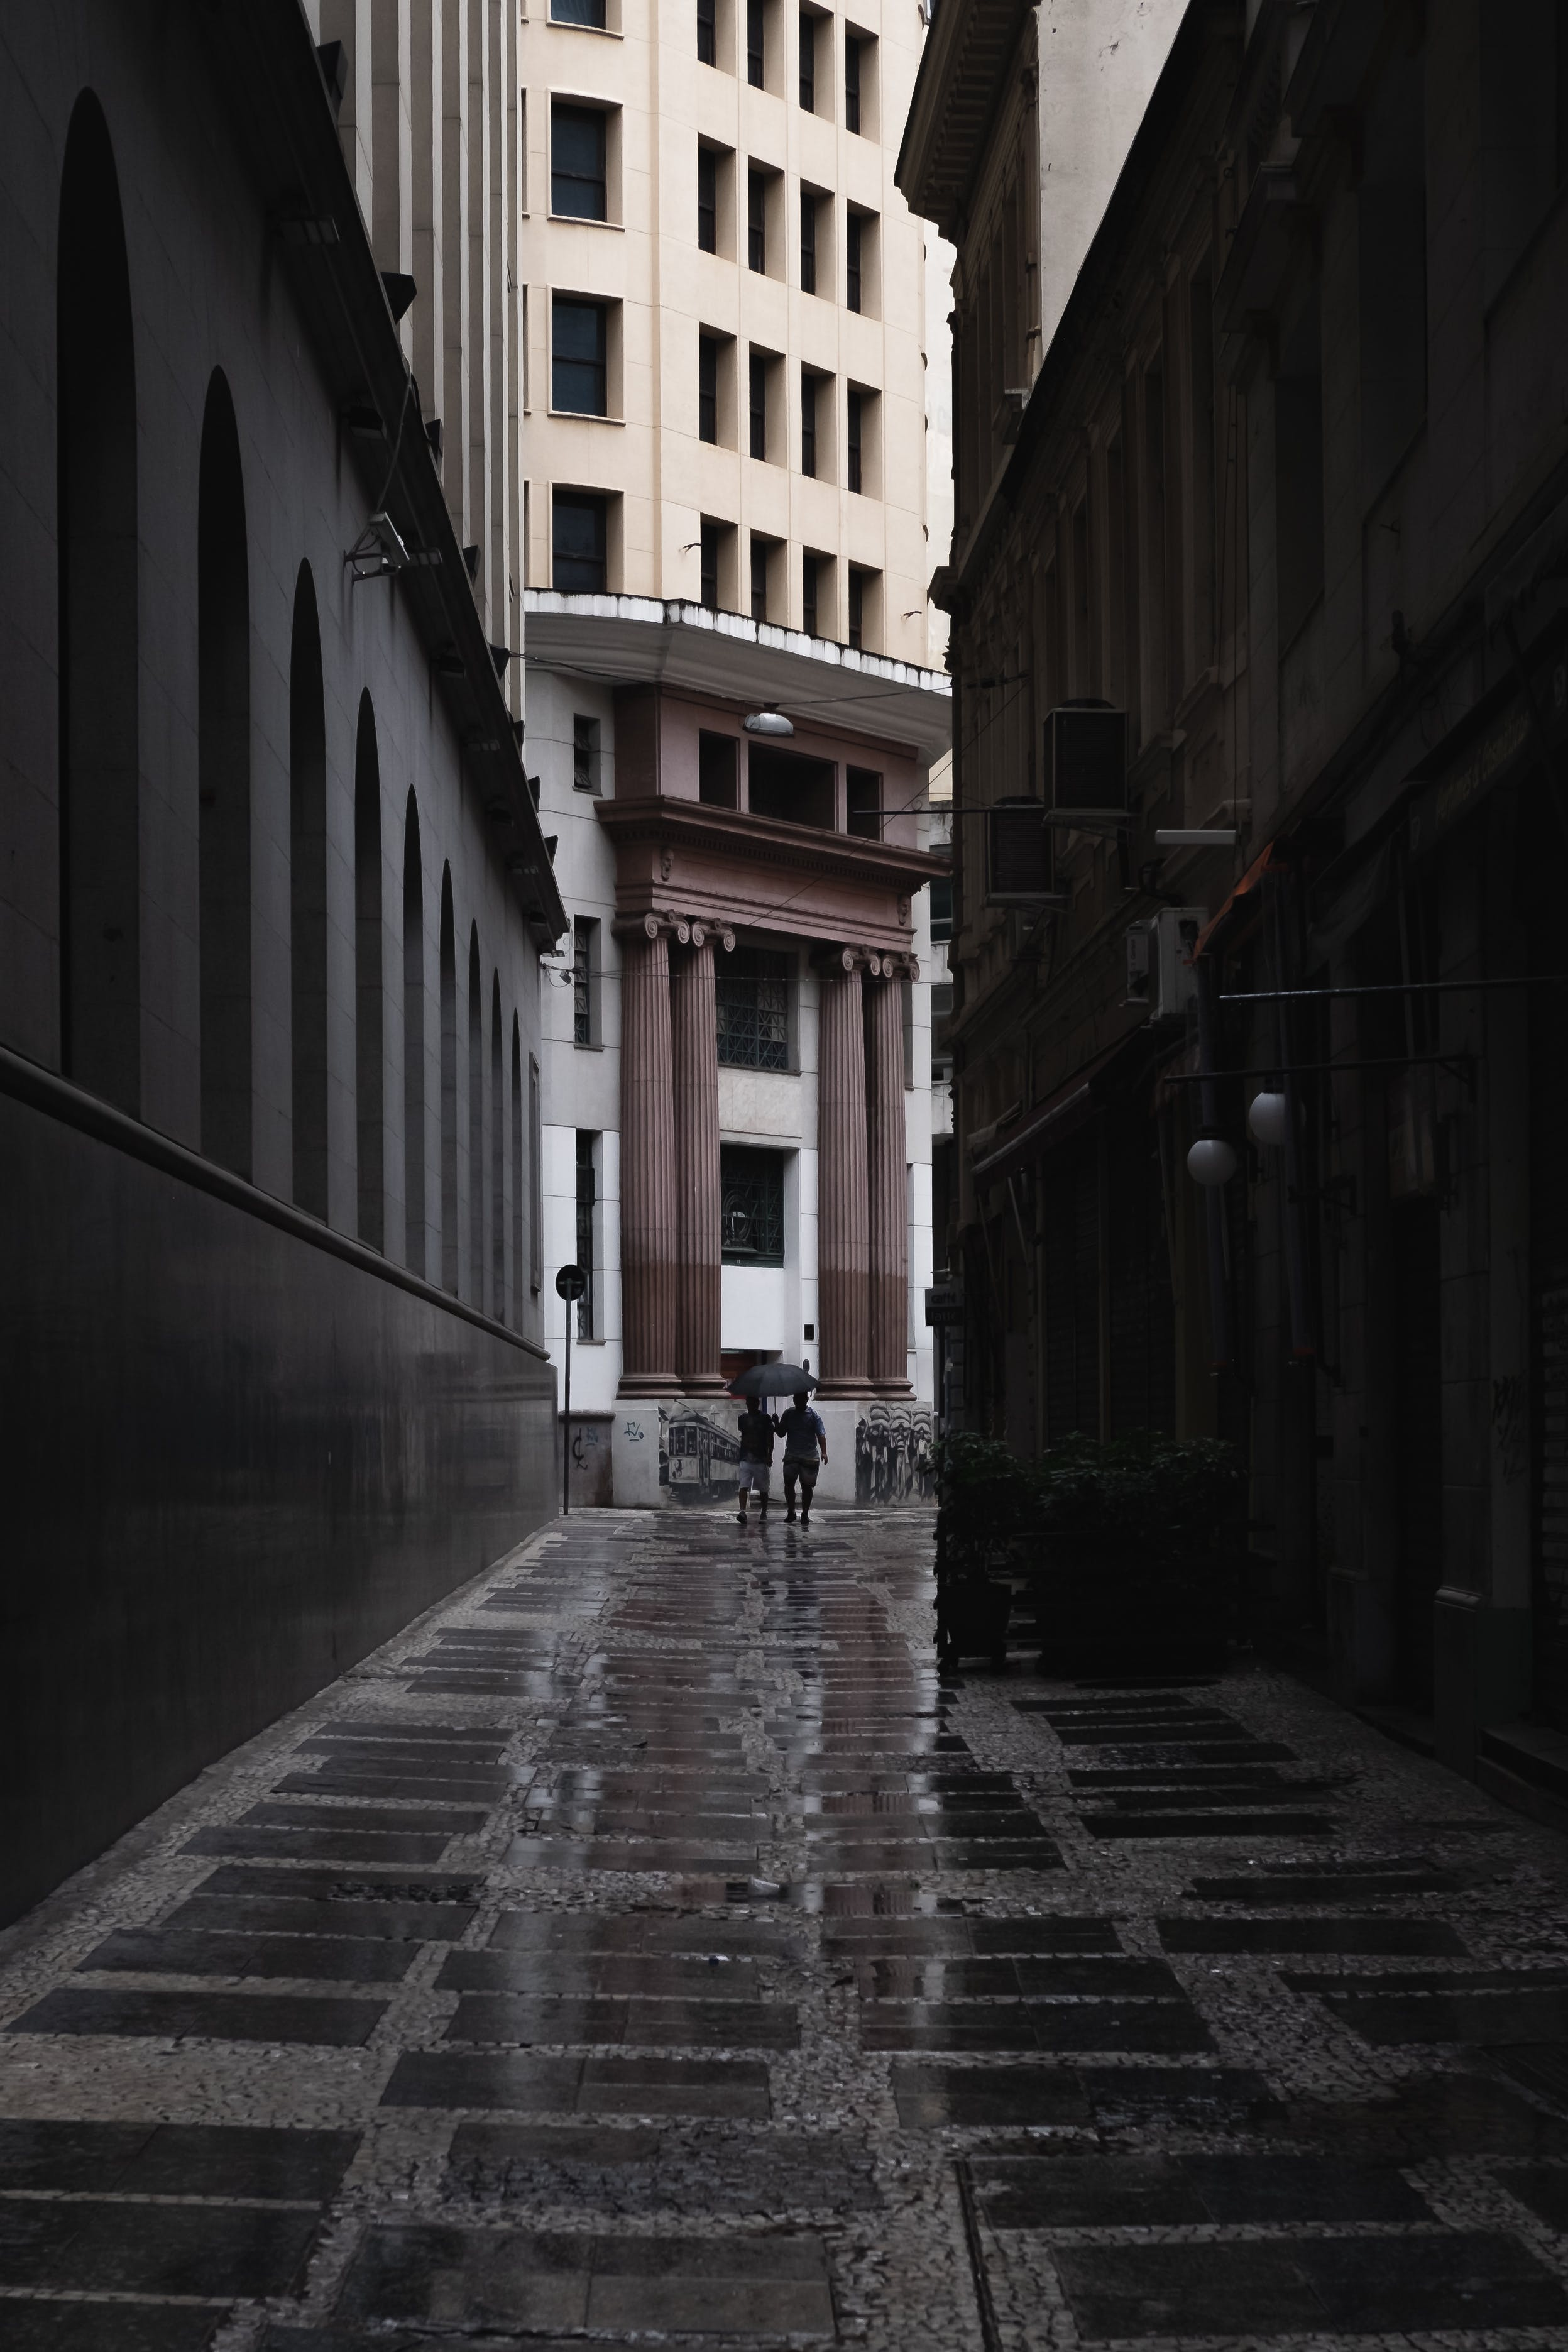 Man Walking Between Buildings